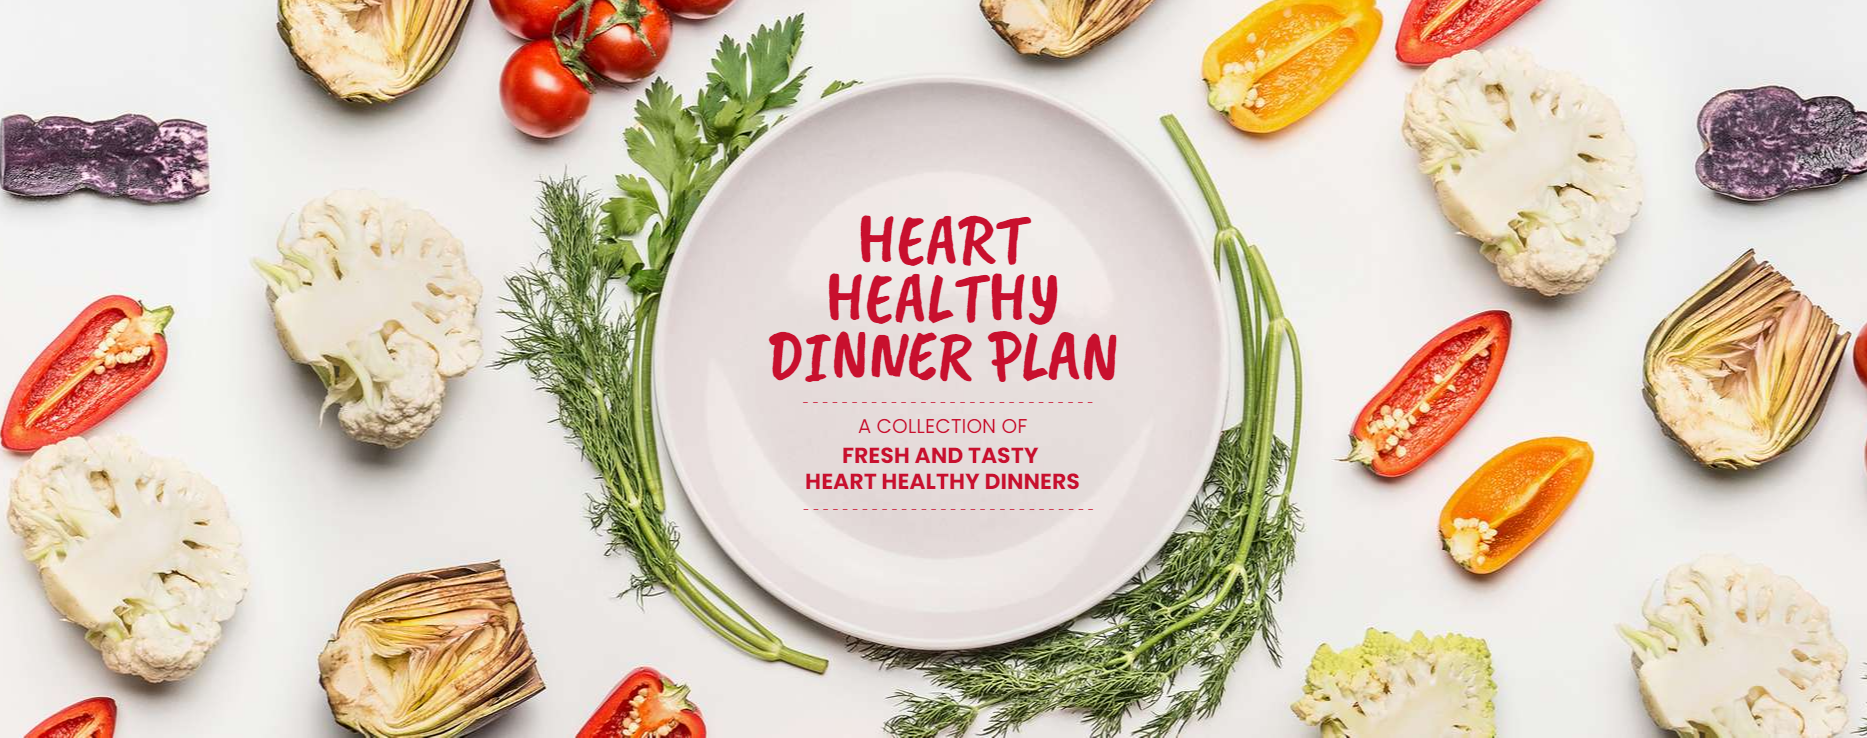 Heart Healthy Dinner Plan